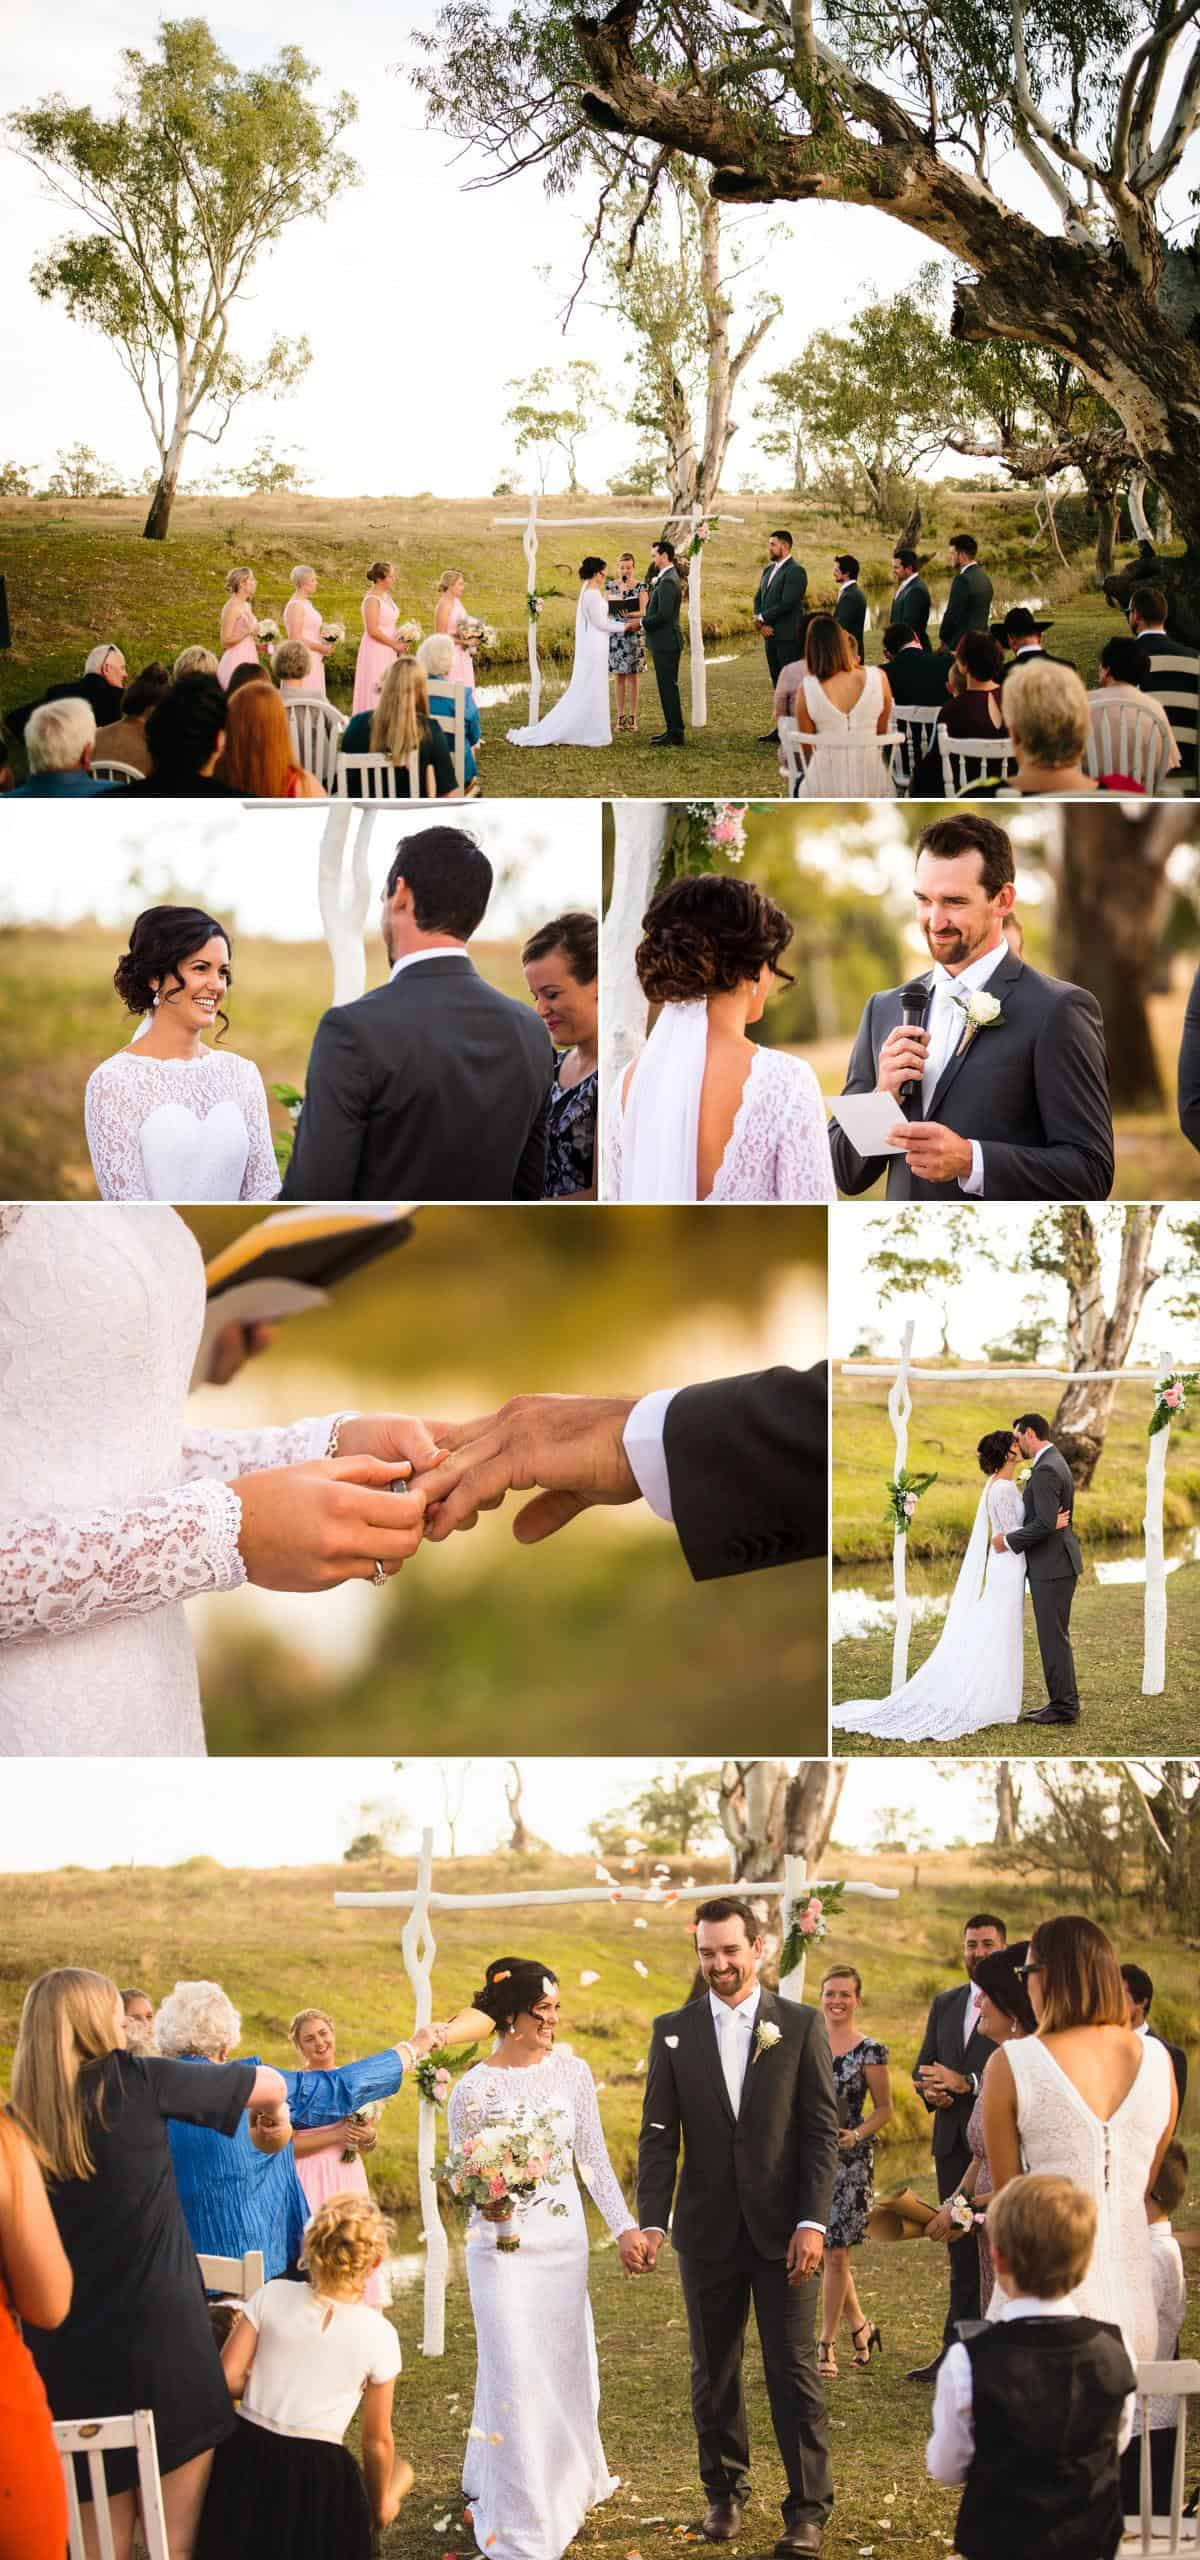 Kate + Brogan The Woolshed wedding www.benandhopeweddings.com.au 8